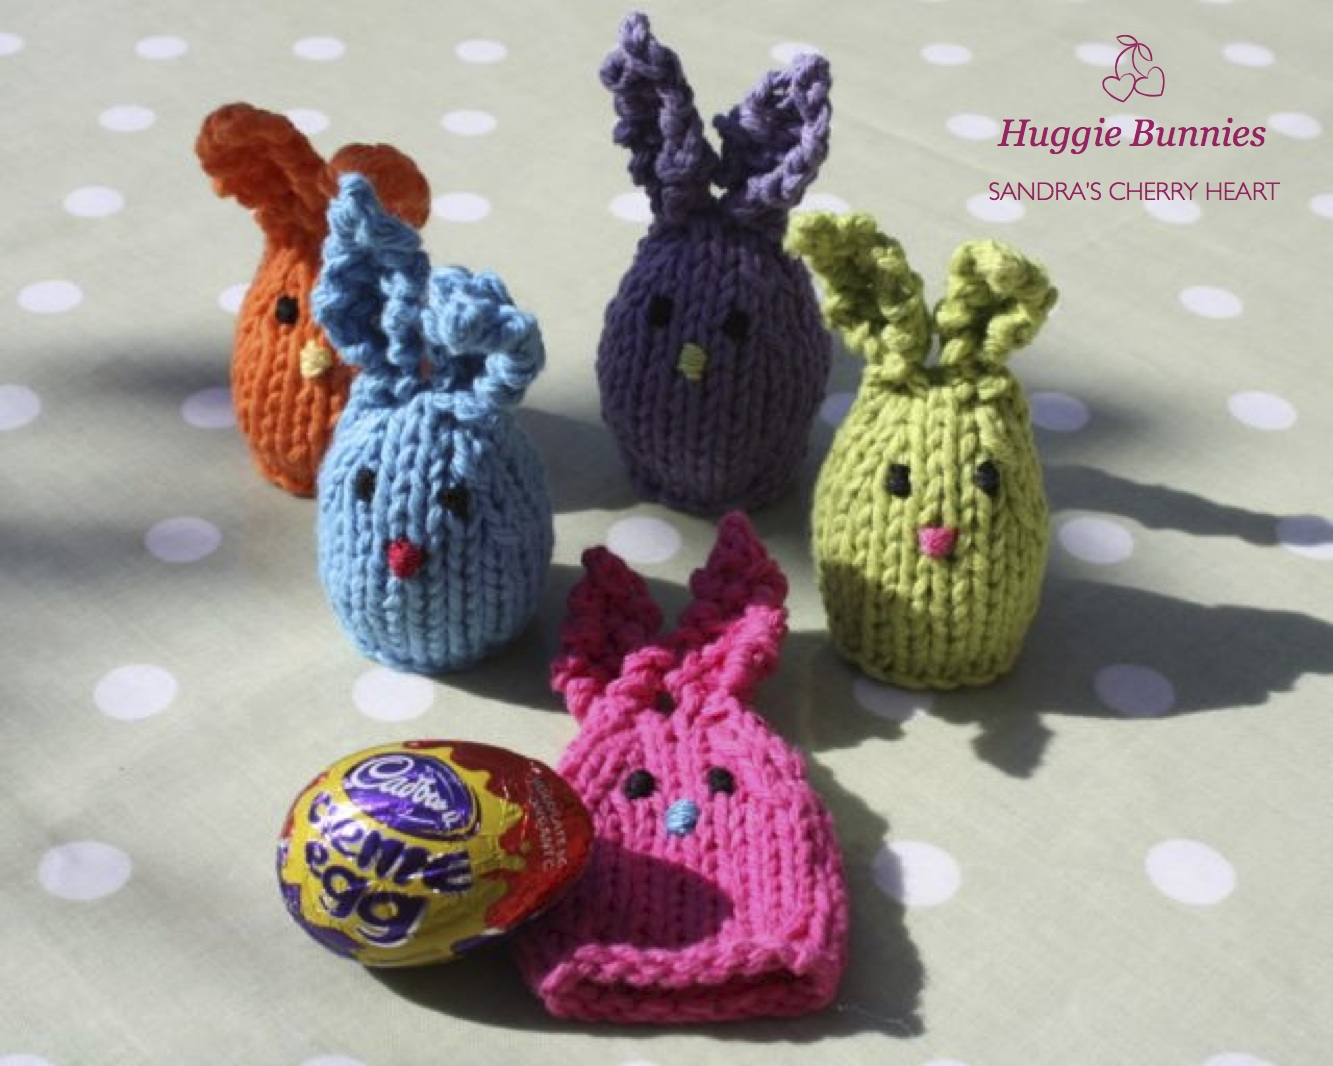 Knitted Creme Egg Cosy Pattern: Images about egg cosies on pinterest ...